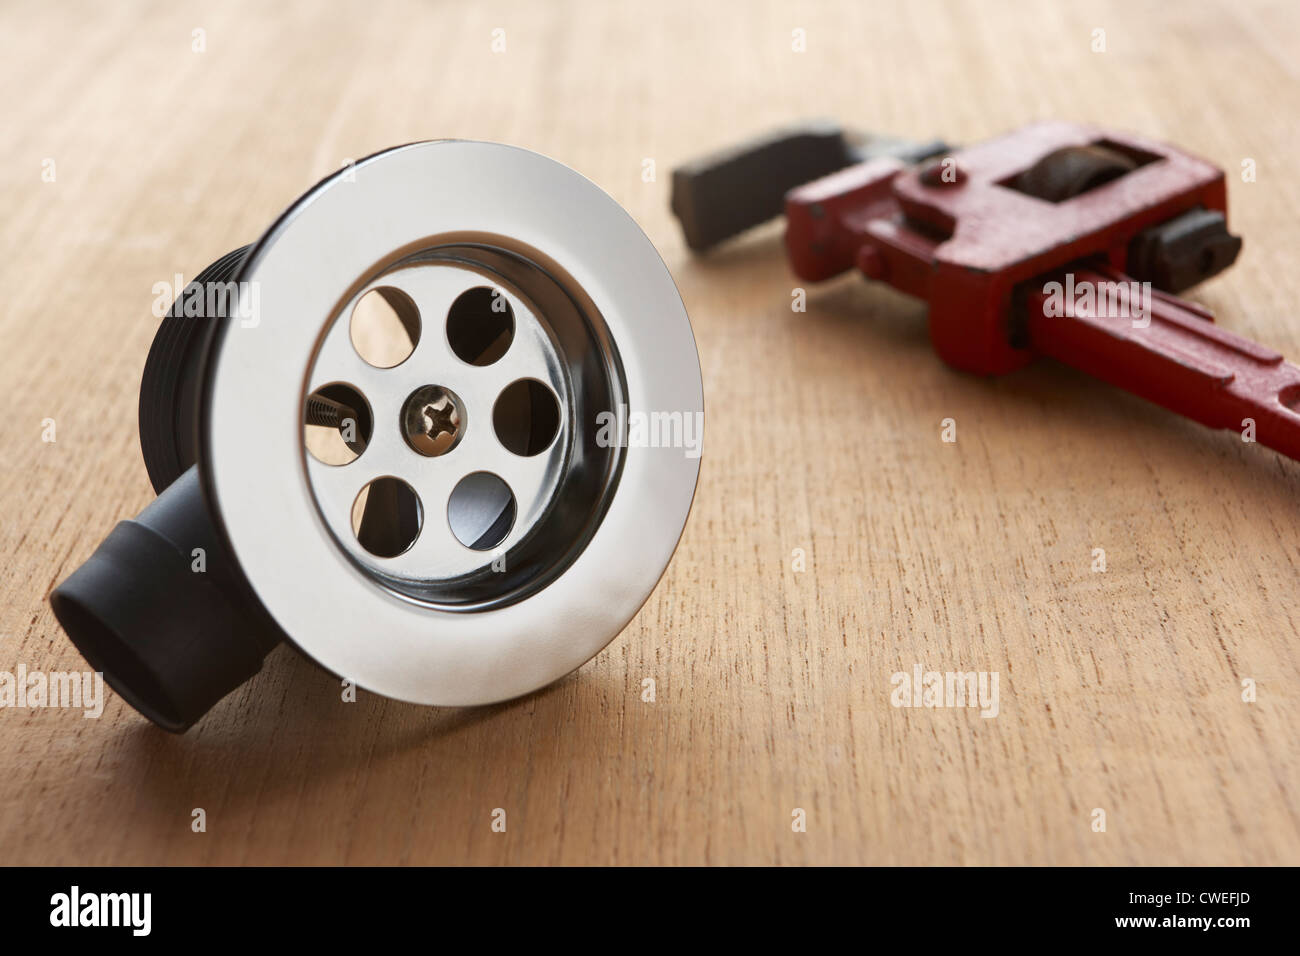 Plumbing tools and materials - Stock Image